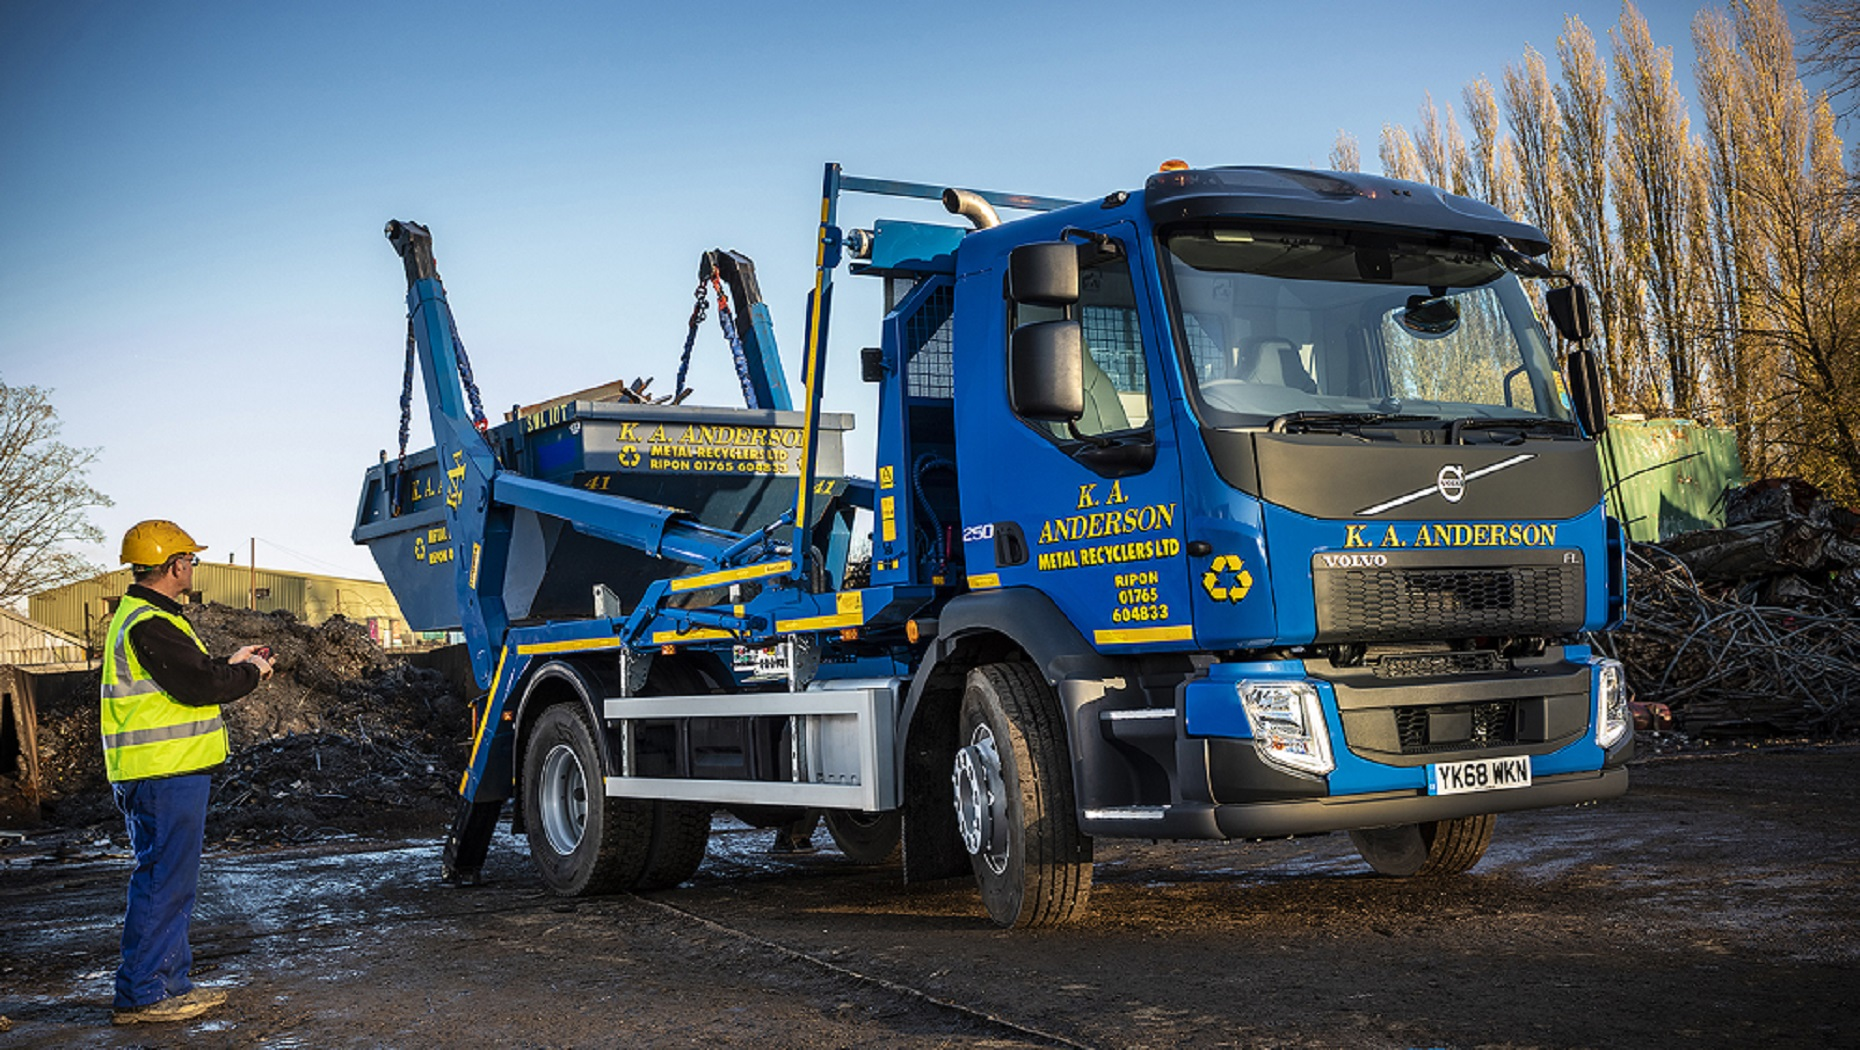 K A Anderson Metal Recyclers Ltd Shops Local for a New Volvo FL Skip Loader